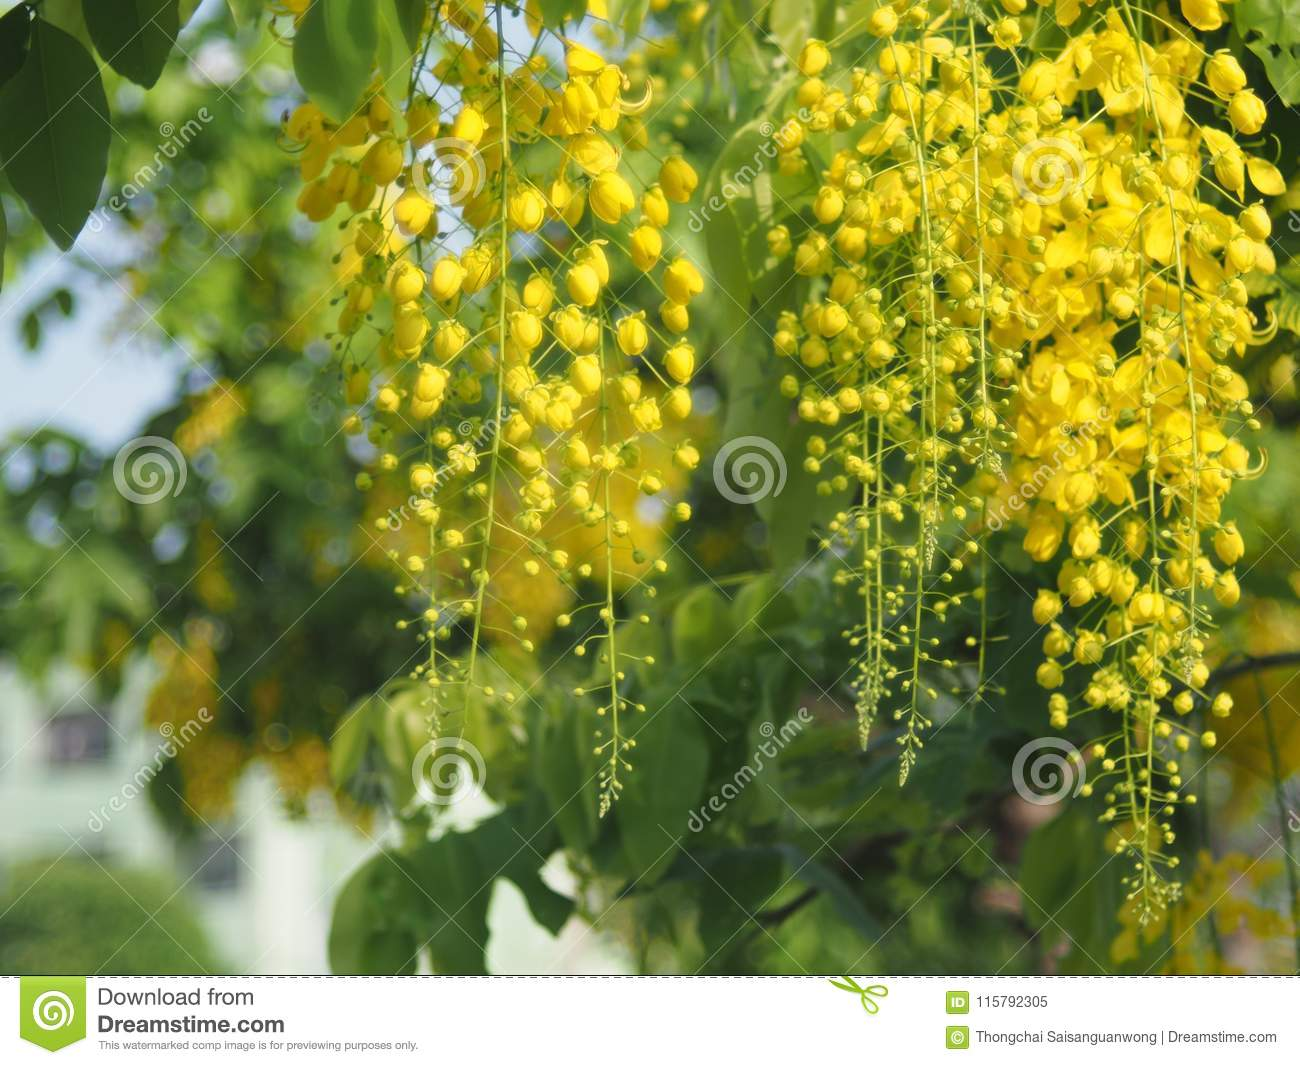 Yellow Flowers That Are Inflorescence Hanging From The Flowering